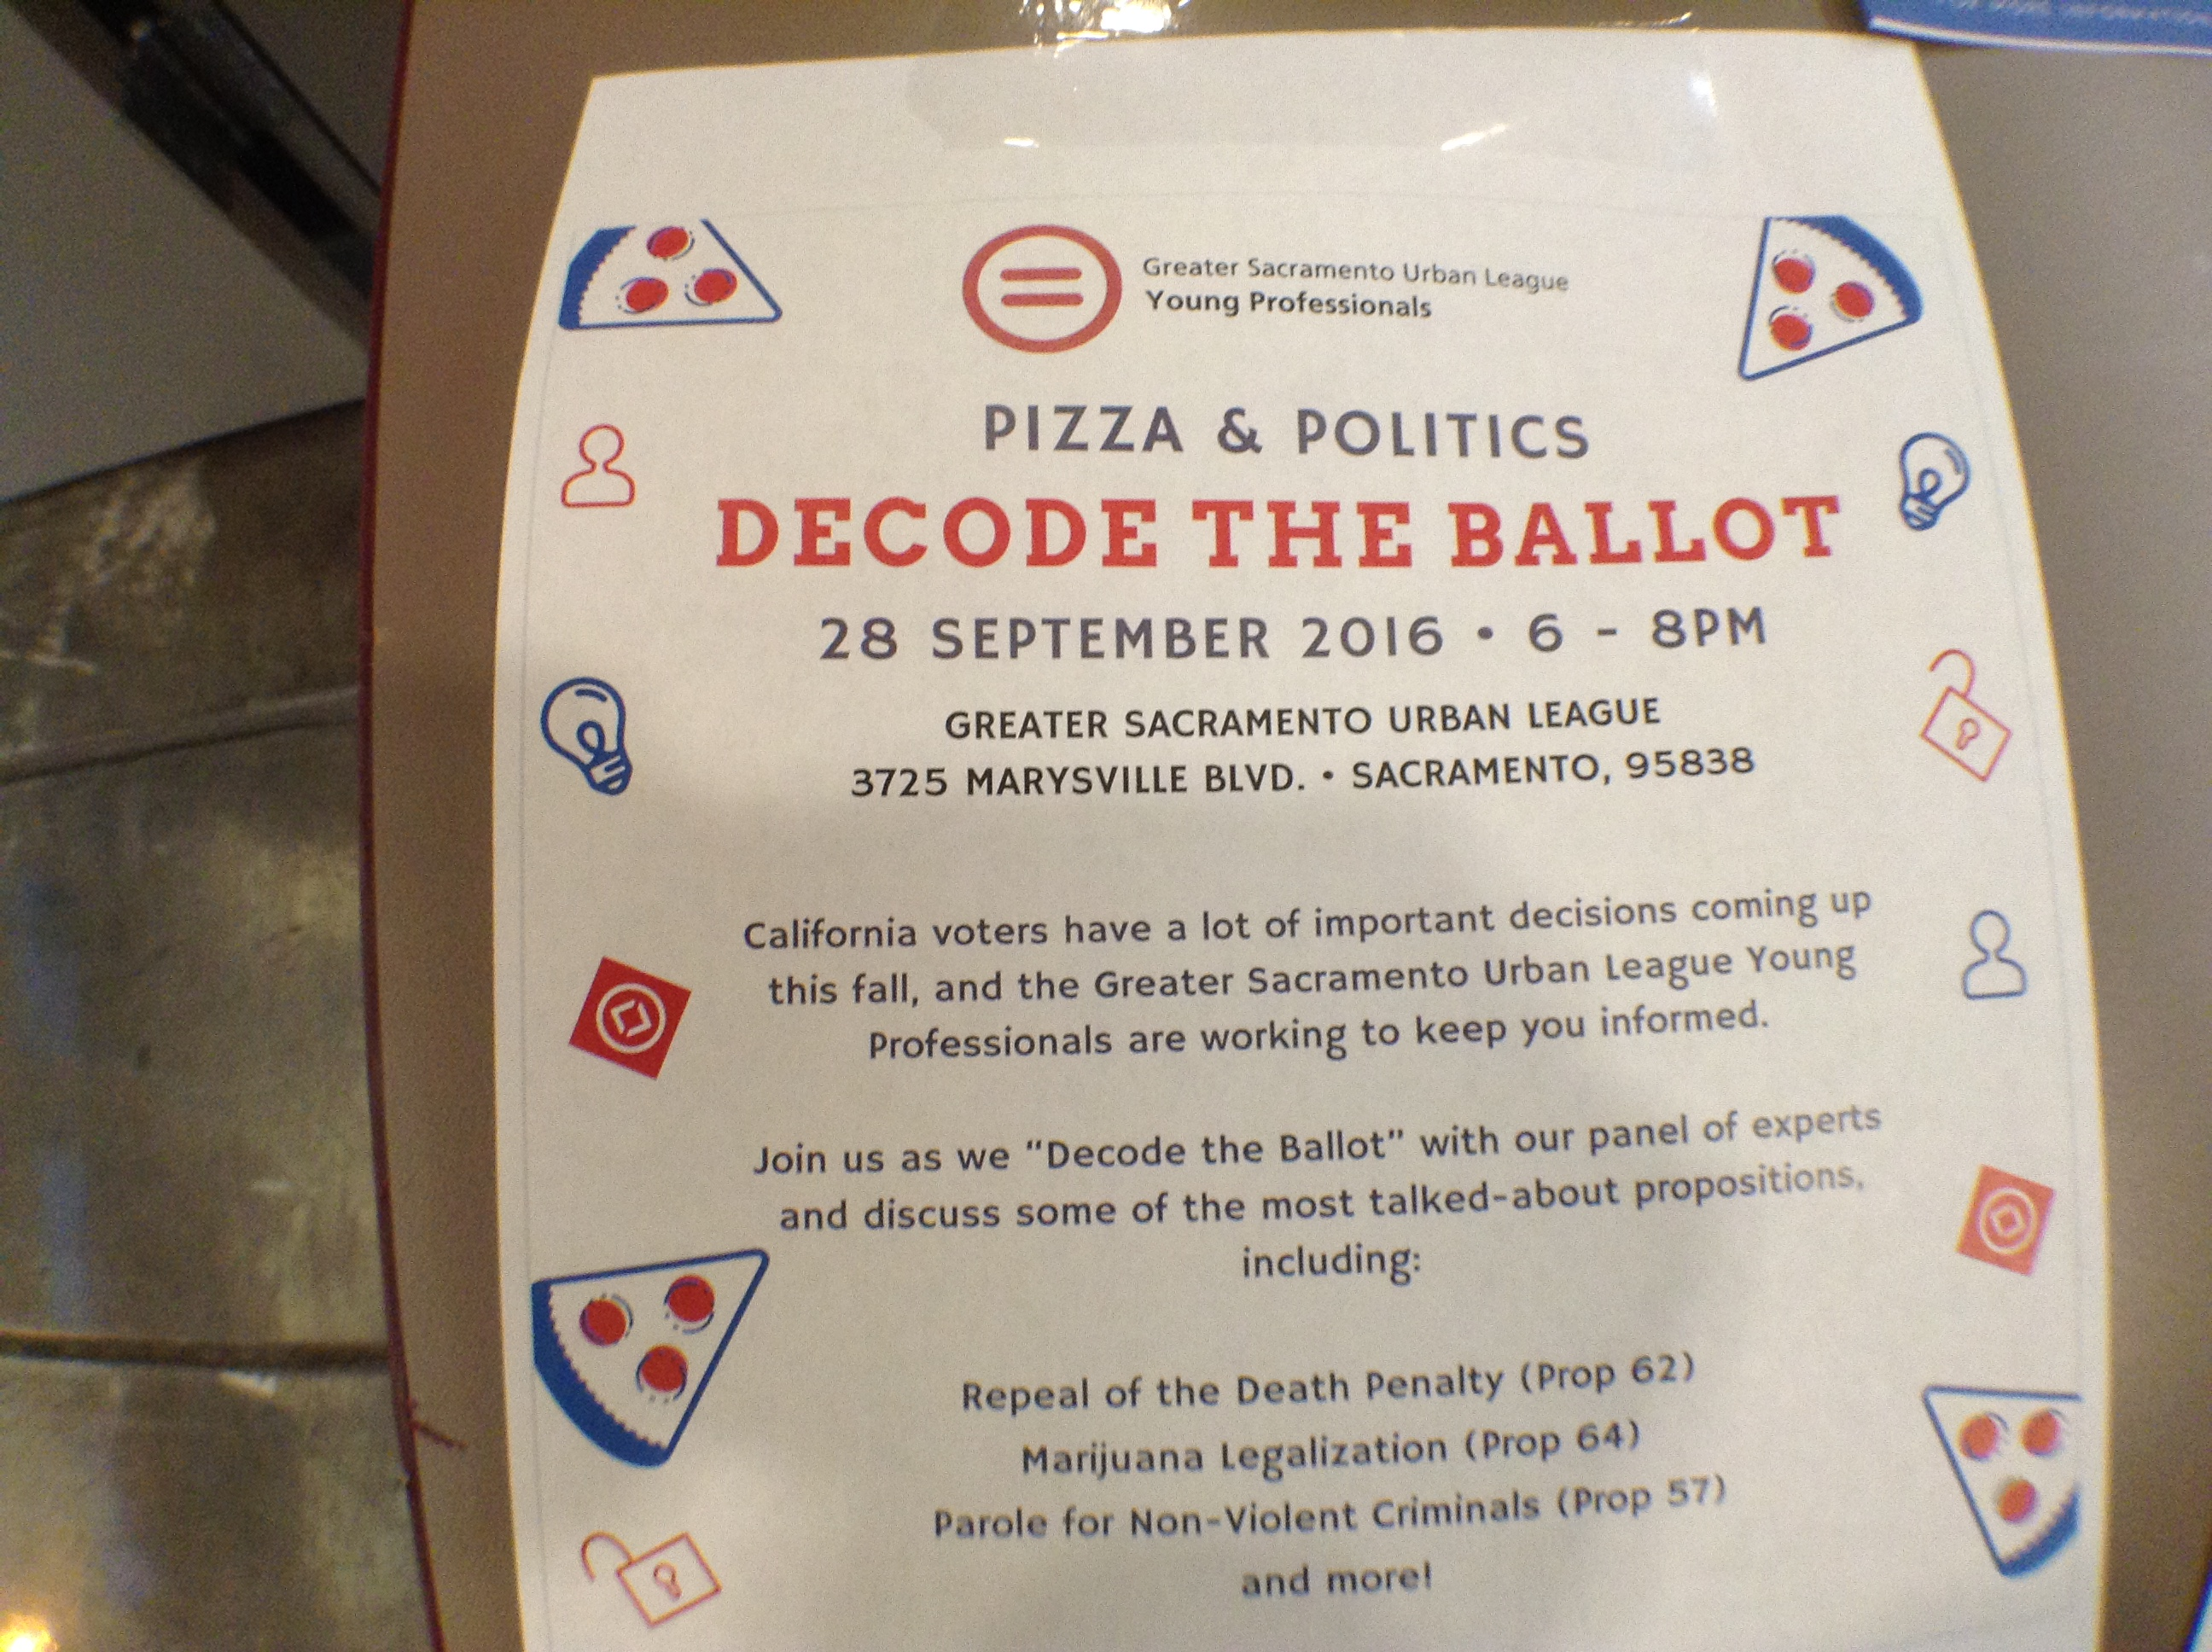 VIDEO: The Urban Leauge Works to Decode The Ballot